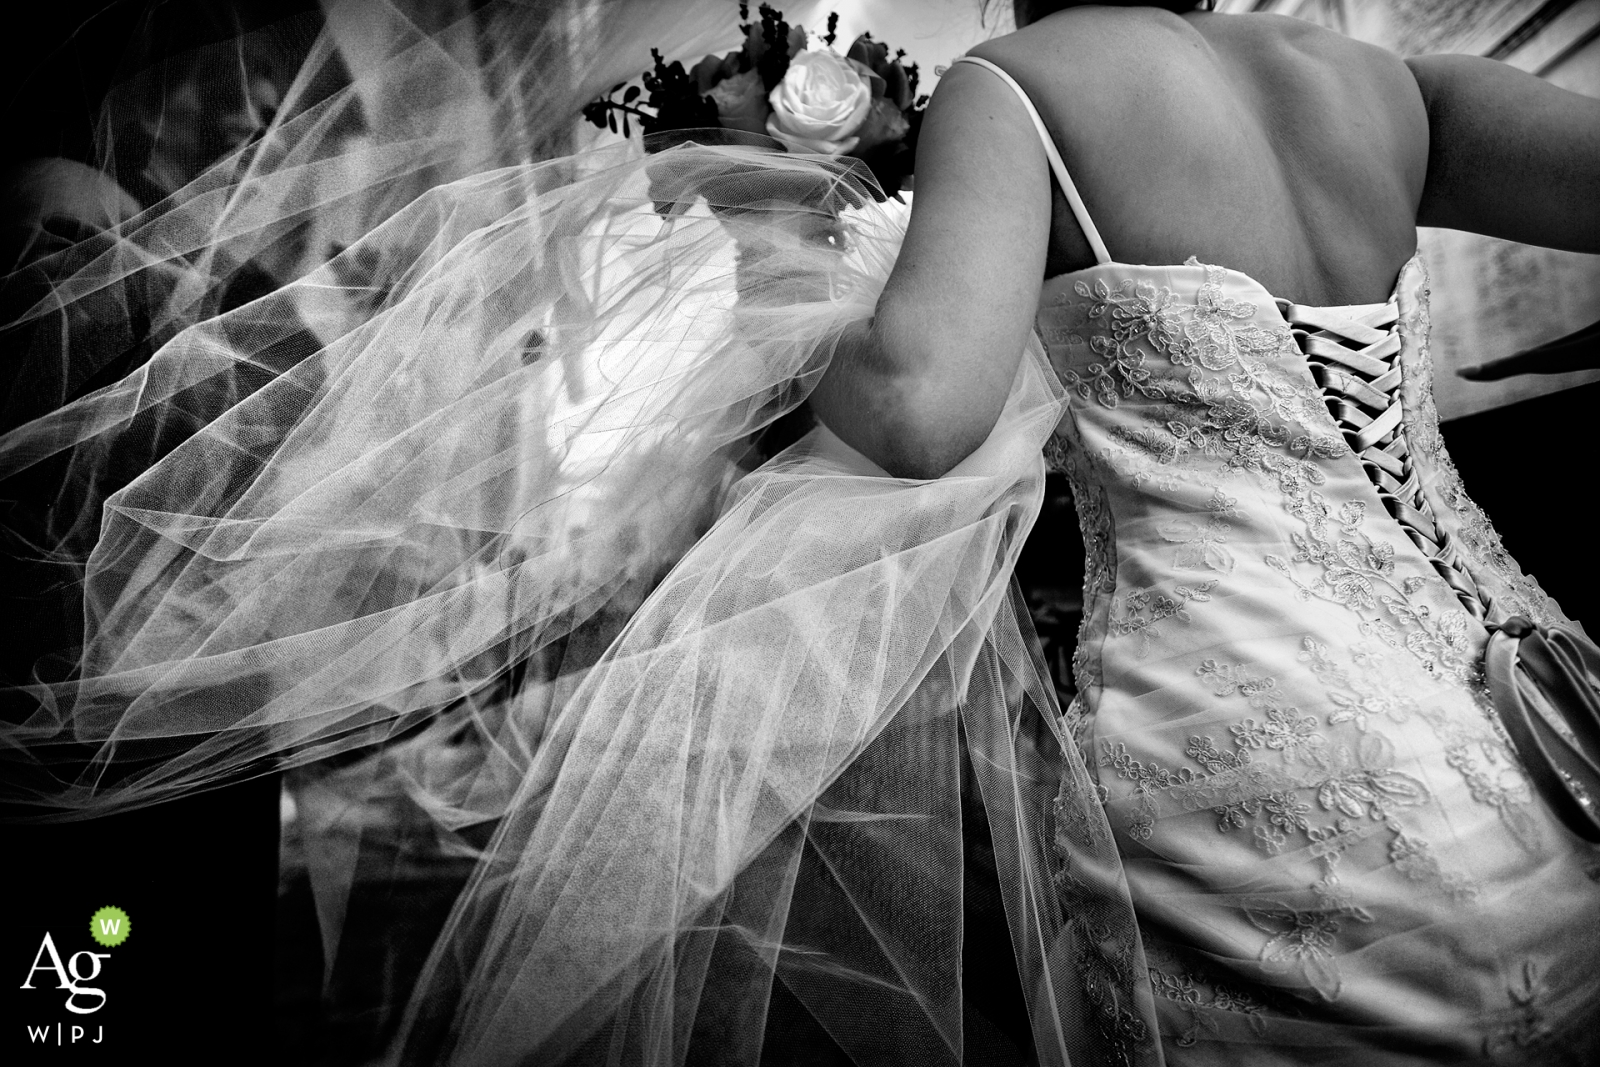 Danilo Coluccio is an artistic wedding photographer for Reggio Calabria